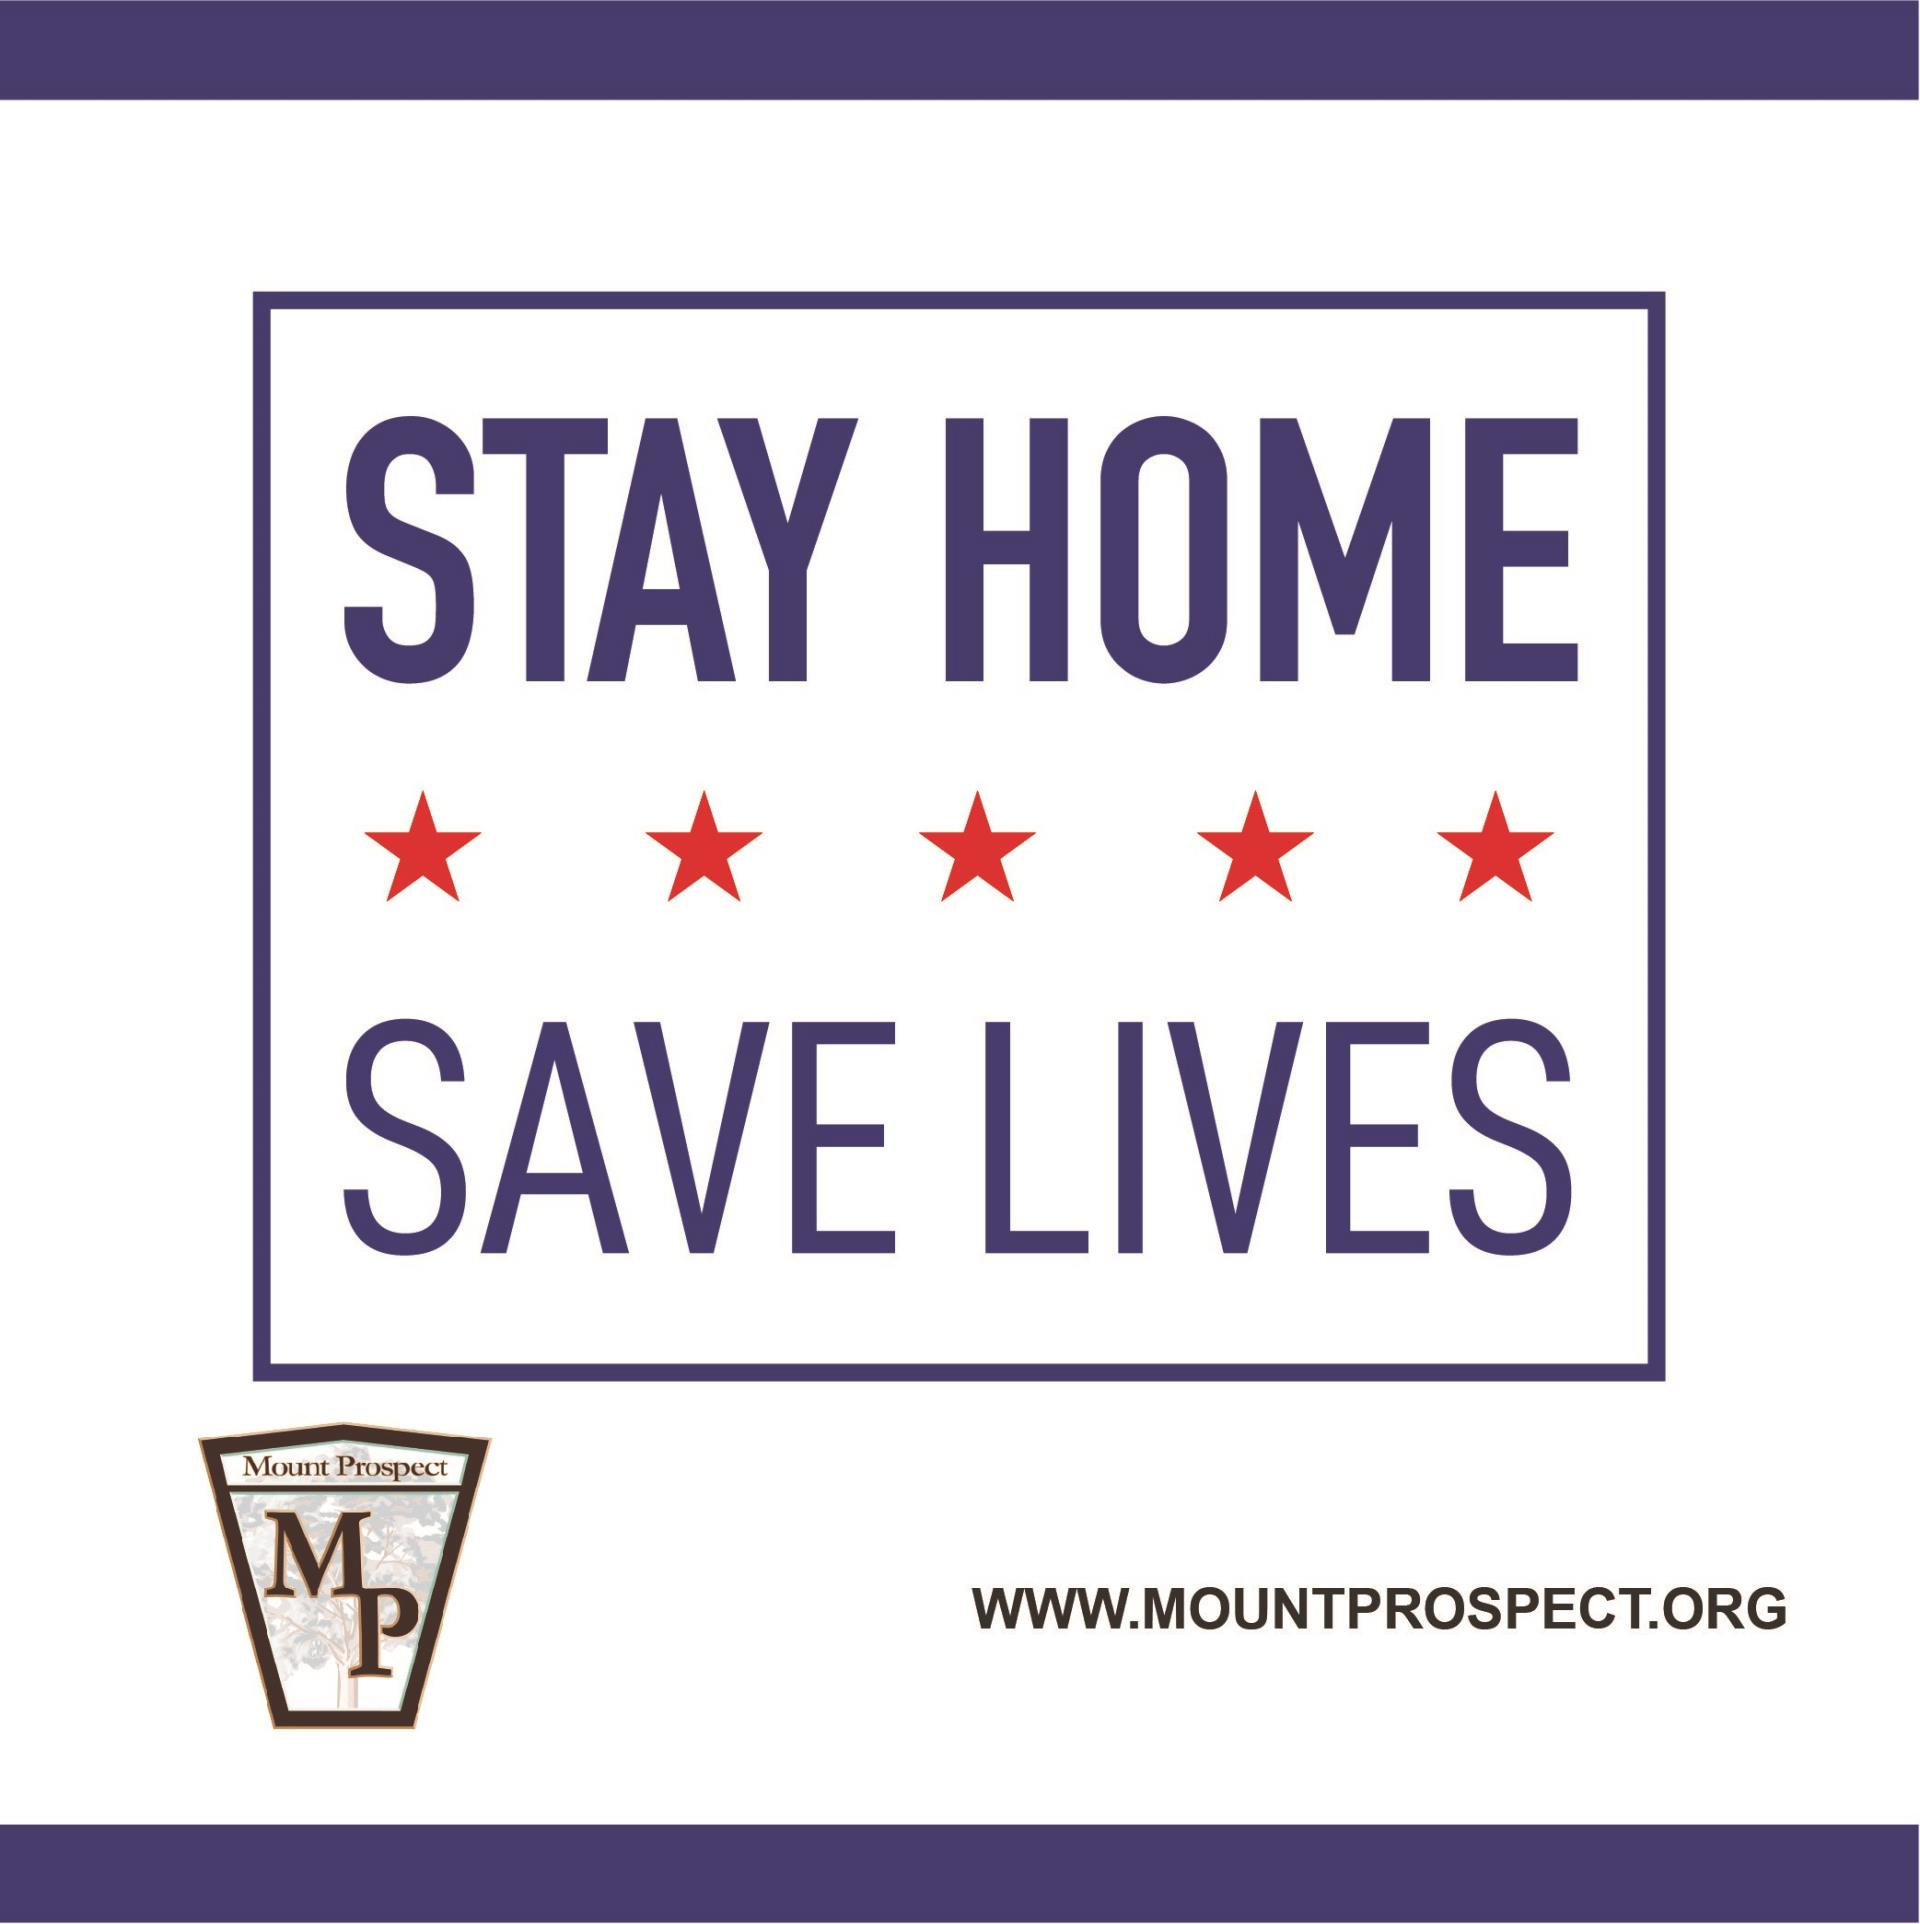 Stay Home Save Lives Logo